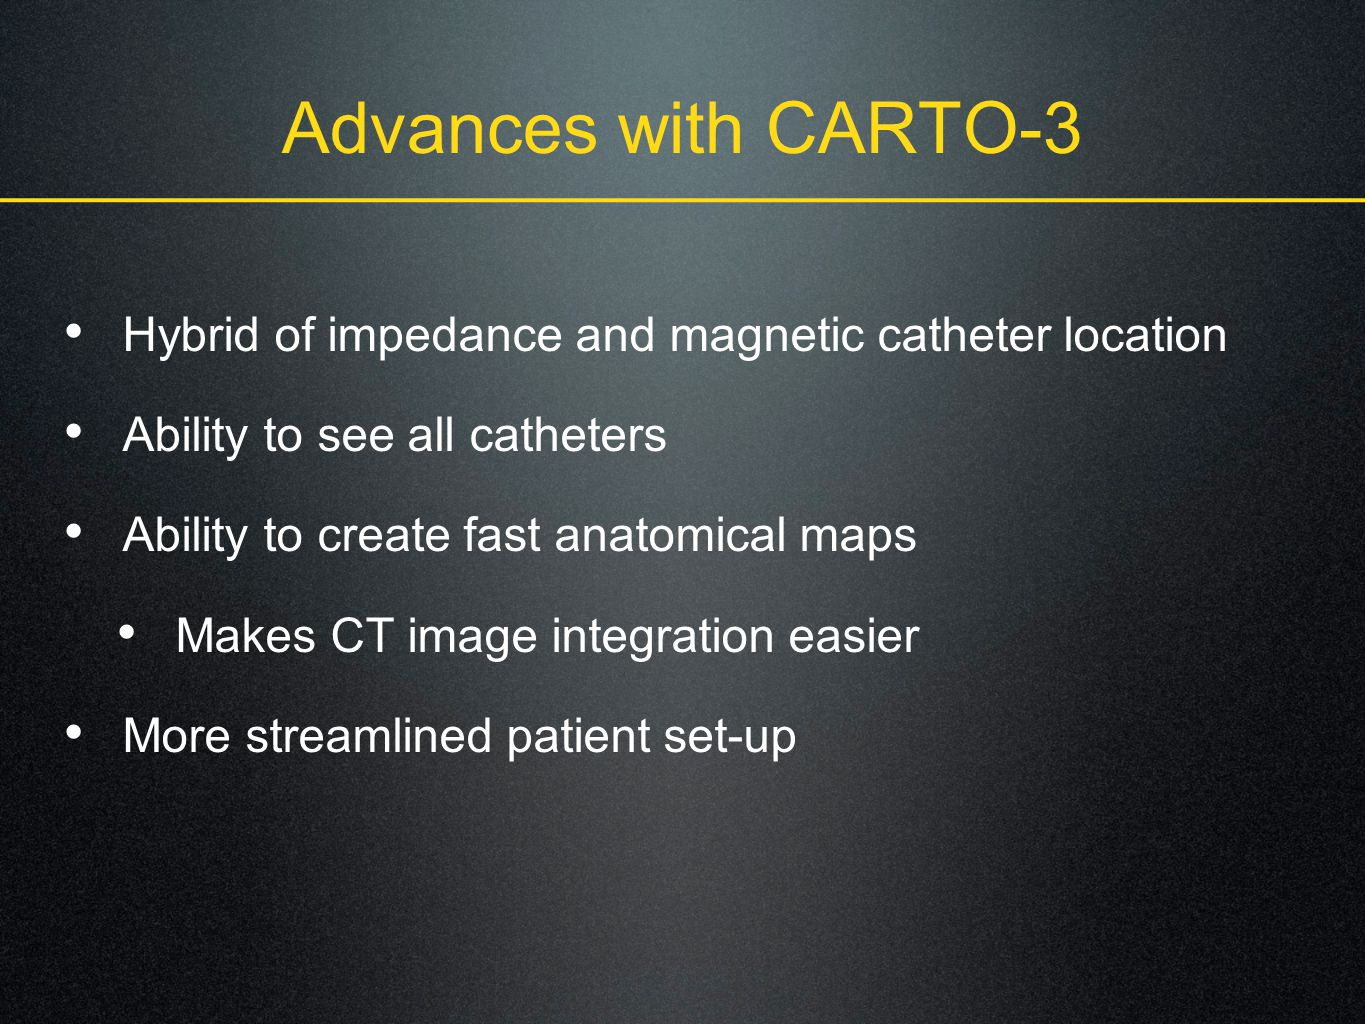 Advances with CARTO-3 Hybrid of impedance and magnetic catheter location. Ability to see all catheters.